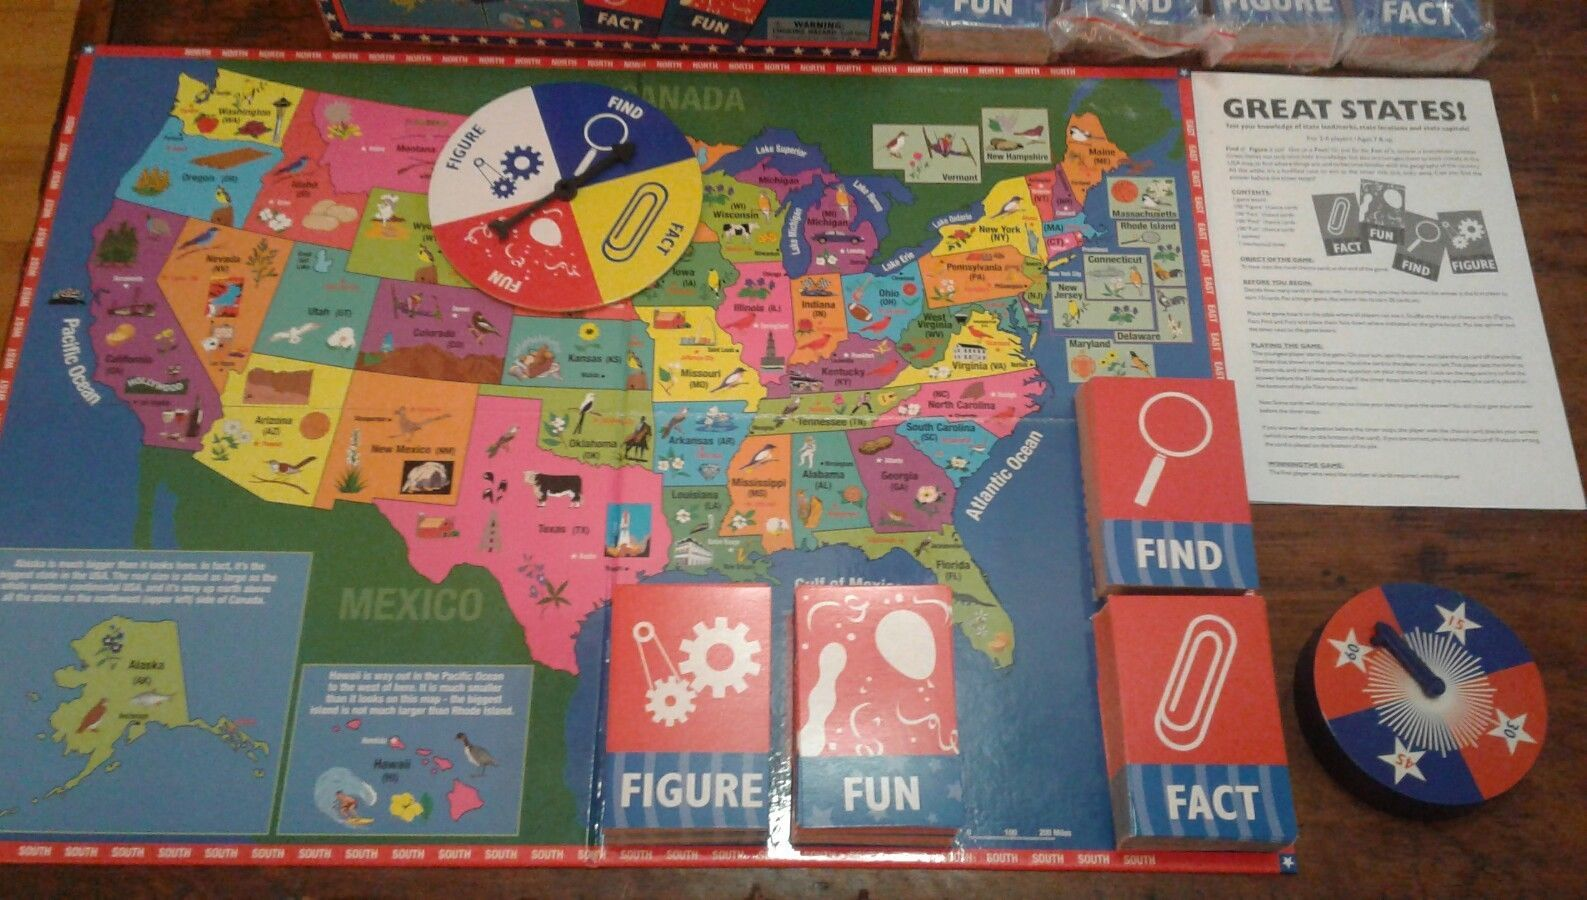 Great States Board Game Test Your Knowledge Of State Landmarks Capitals Etc